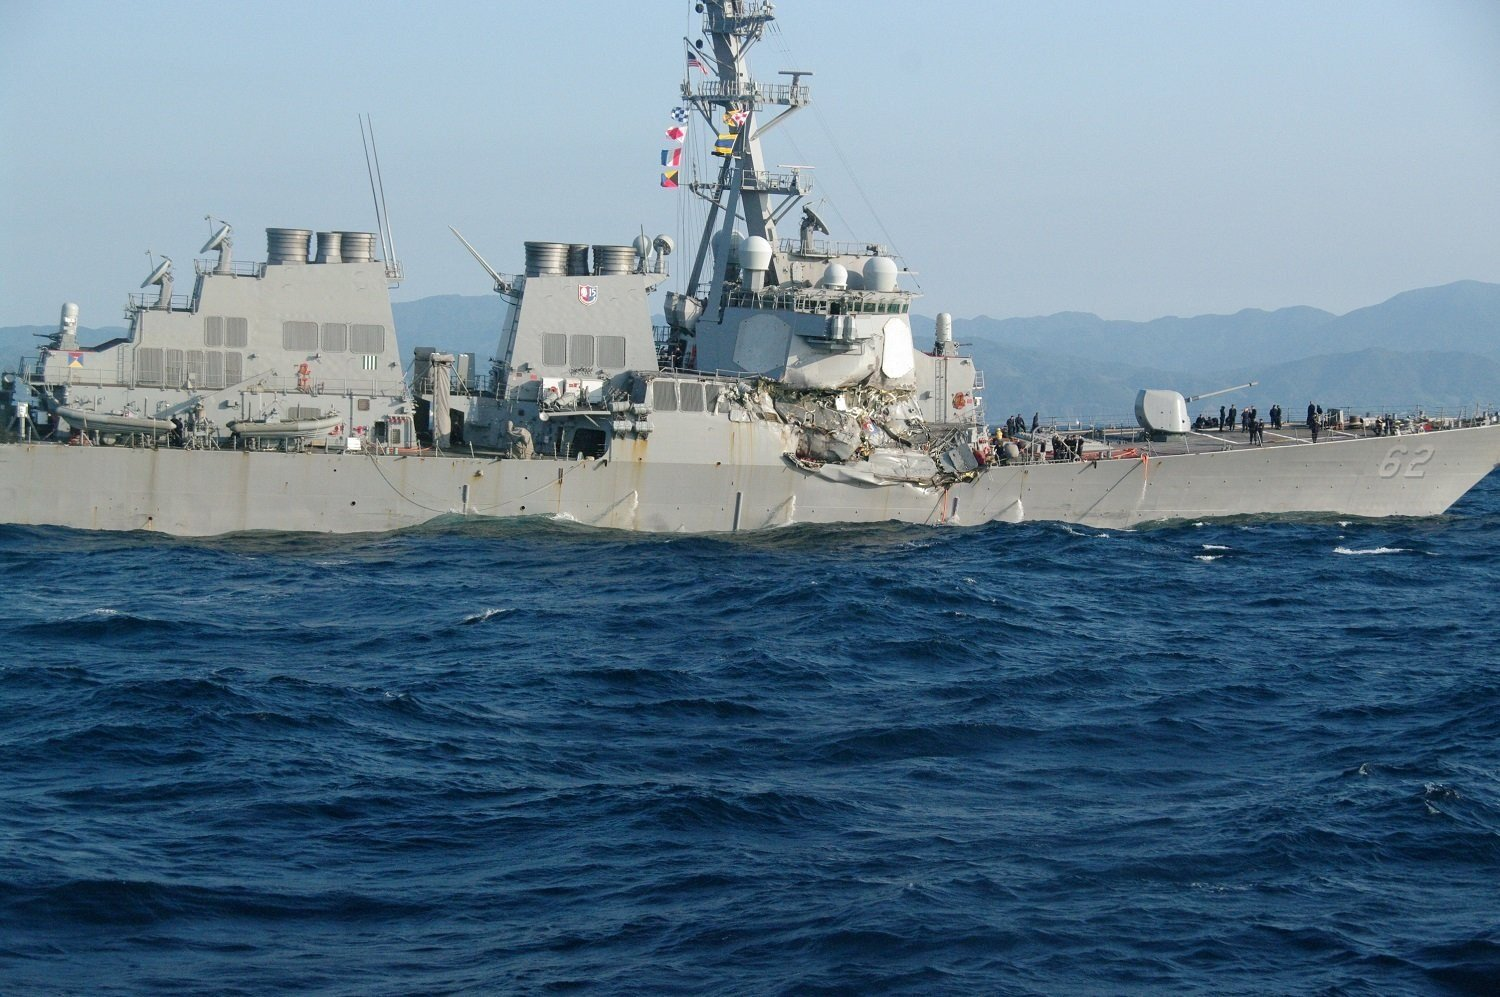 The USS Fitzgerald suffered damage to its starboard side above and below the waterline after it collided with a merchant ship off the coast of Japan. (Credit: Japanese Coast Guard)